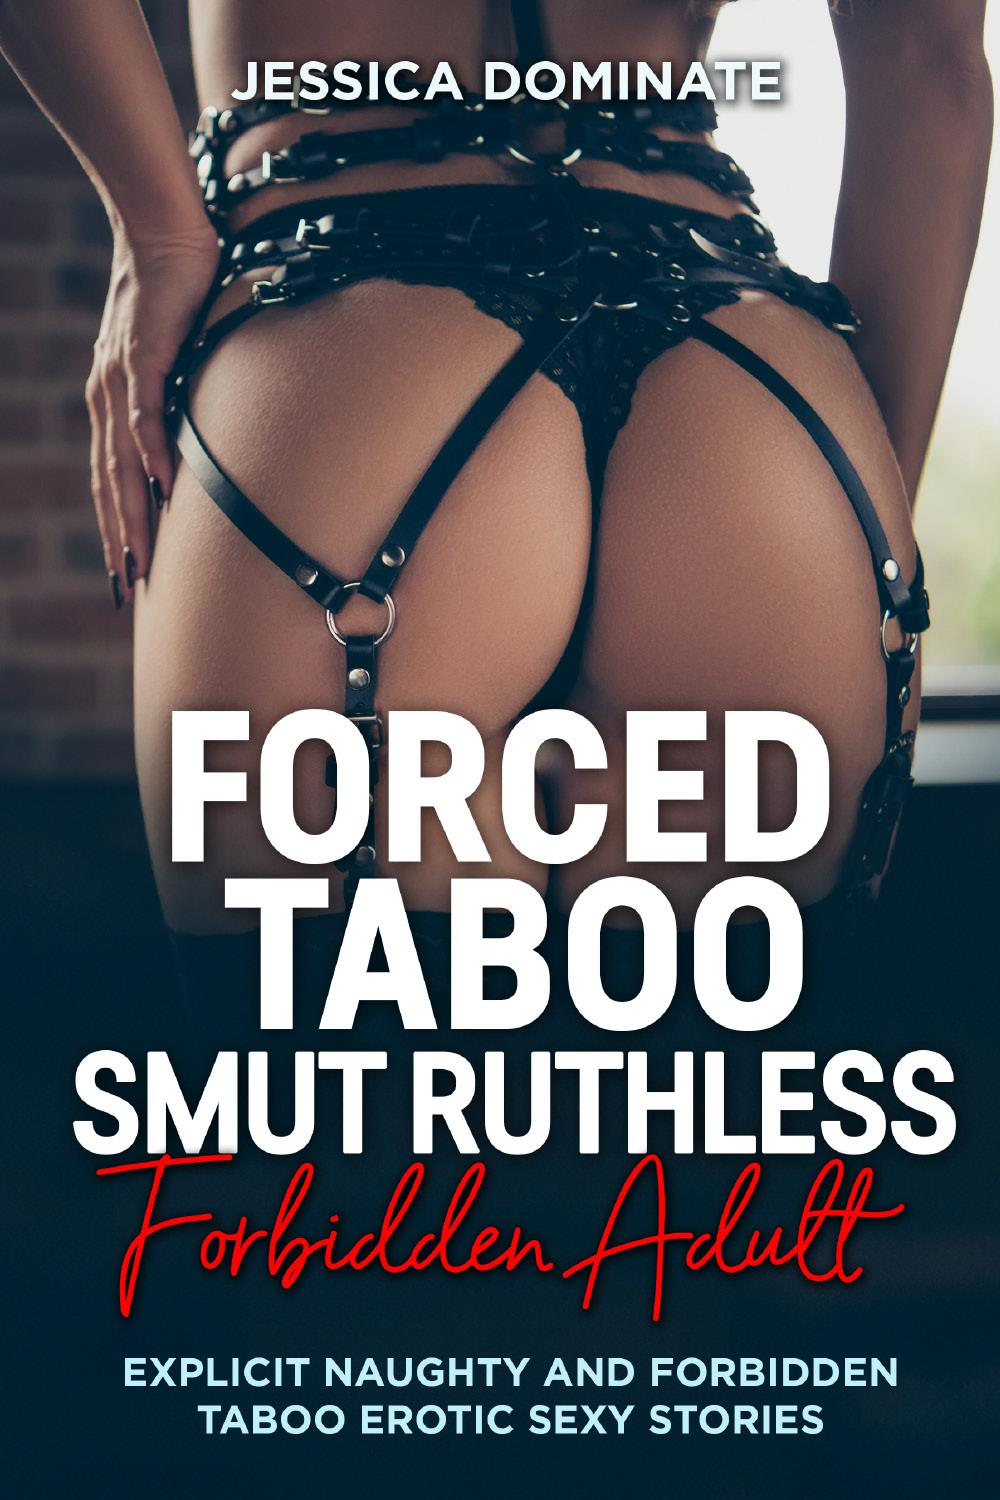 Forced Taboo Smut Ruthless Forbidden Adult. Explicit Naughty And Forbidden Taboo Erotic Sexy Stories